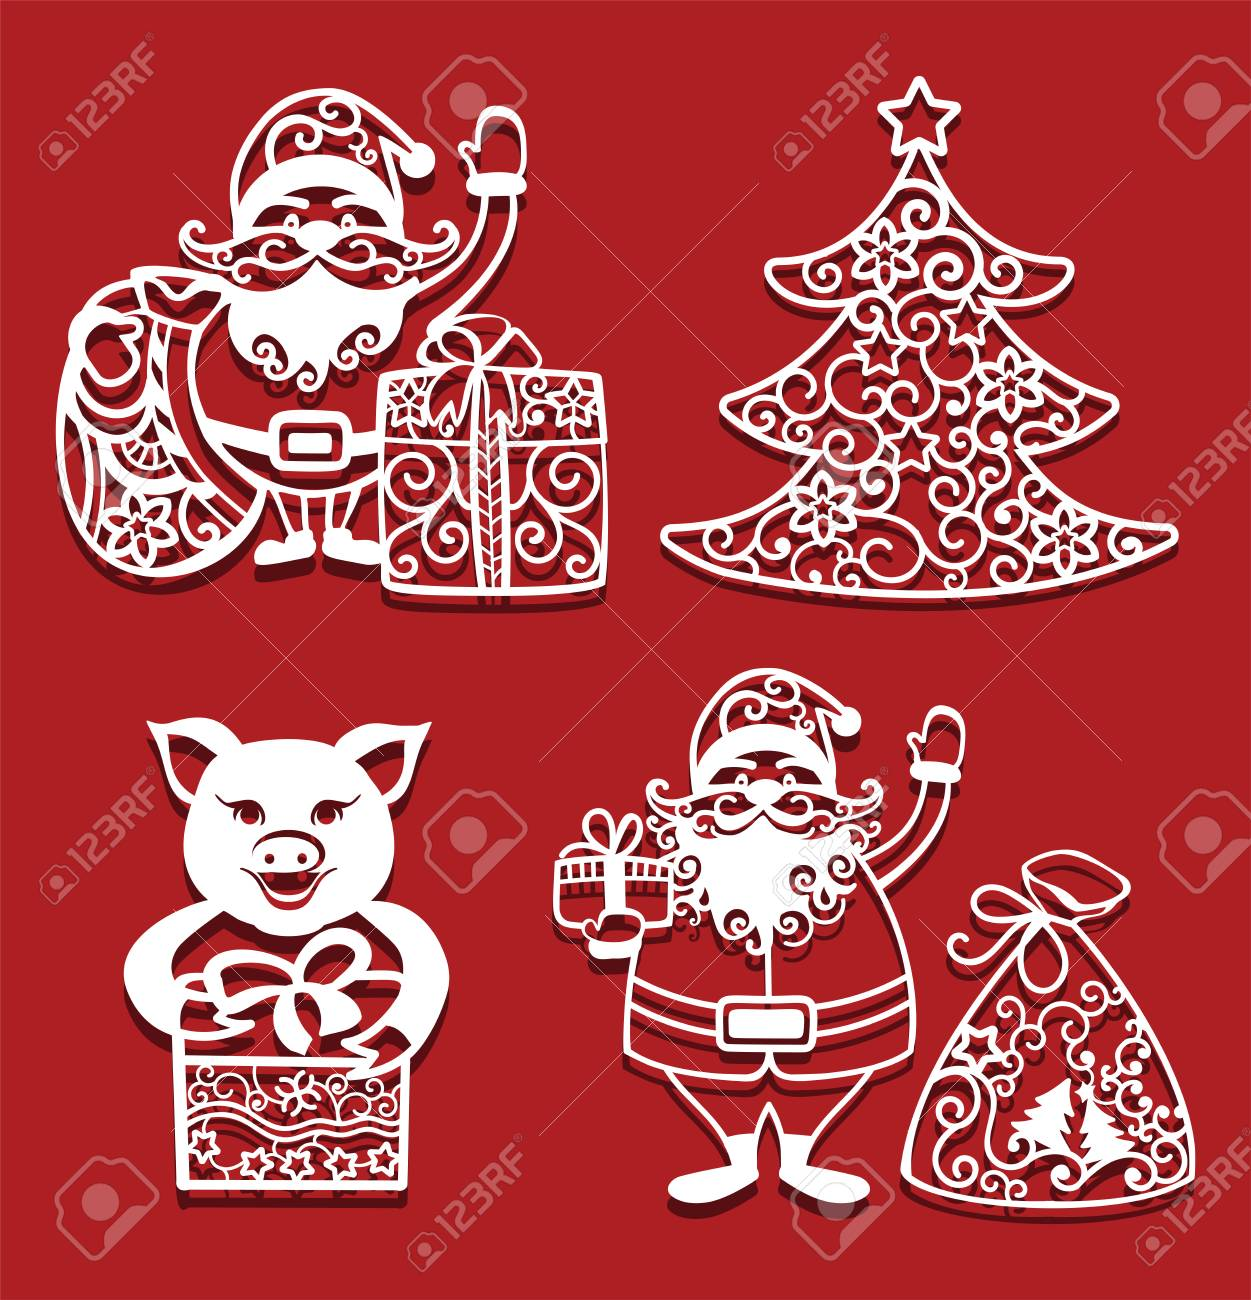 Santa Claus Holding Christmas Bag And Gift Pig With Gift Fir Royalty Free Cliparts Vectors And Stock Illustration Image 127157802